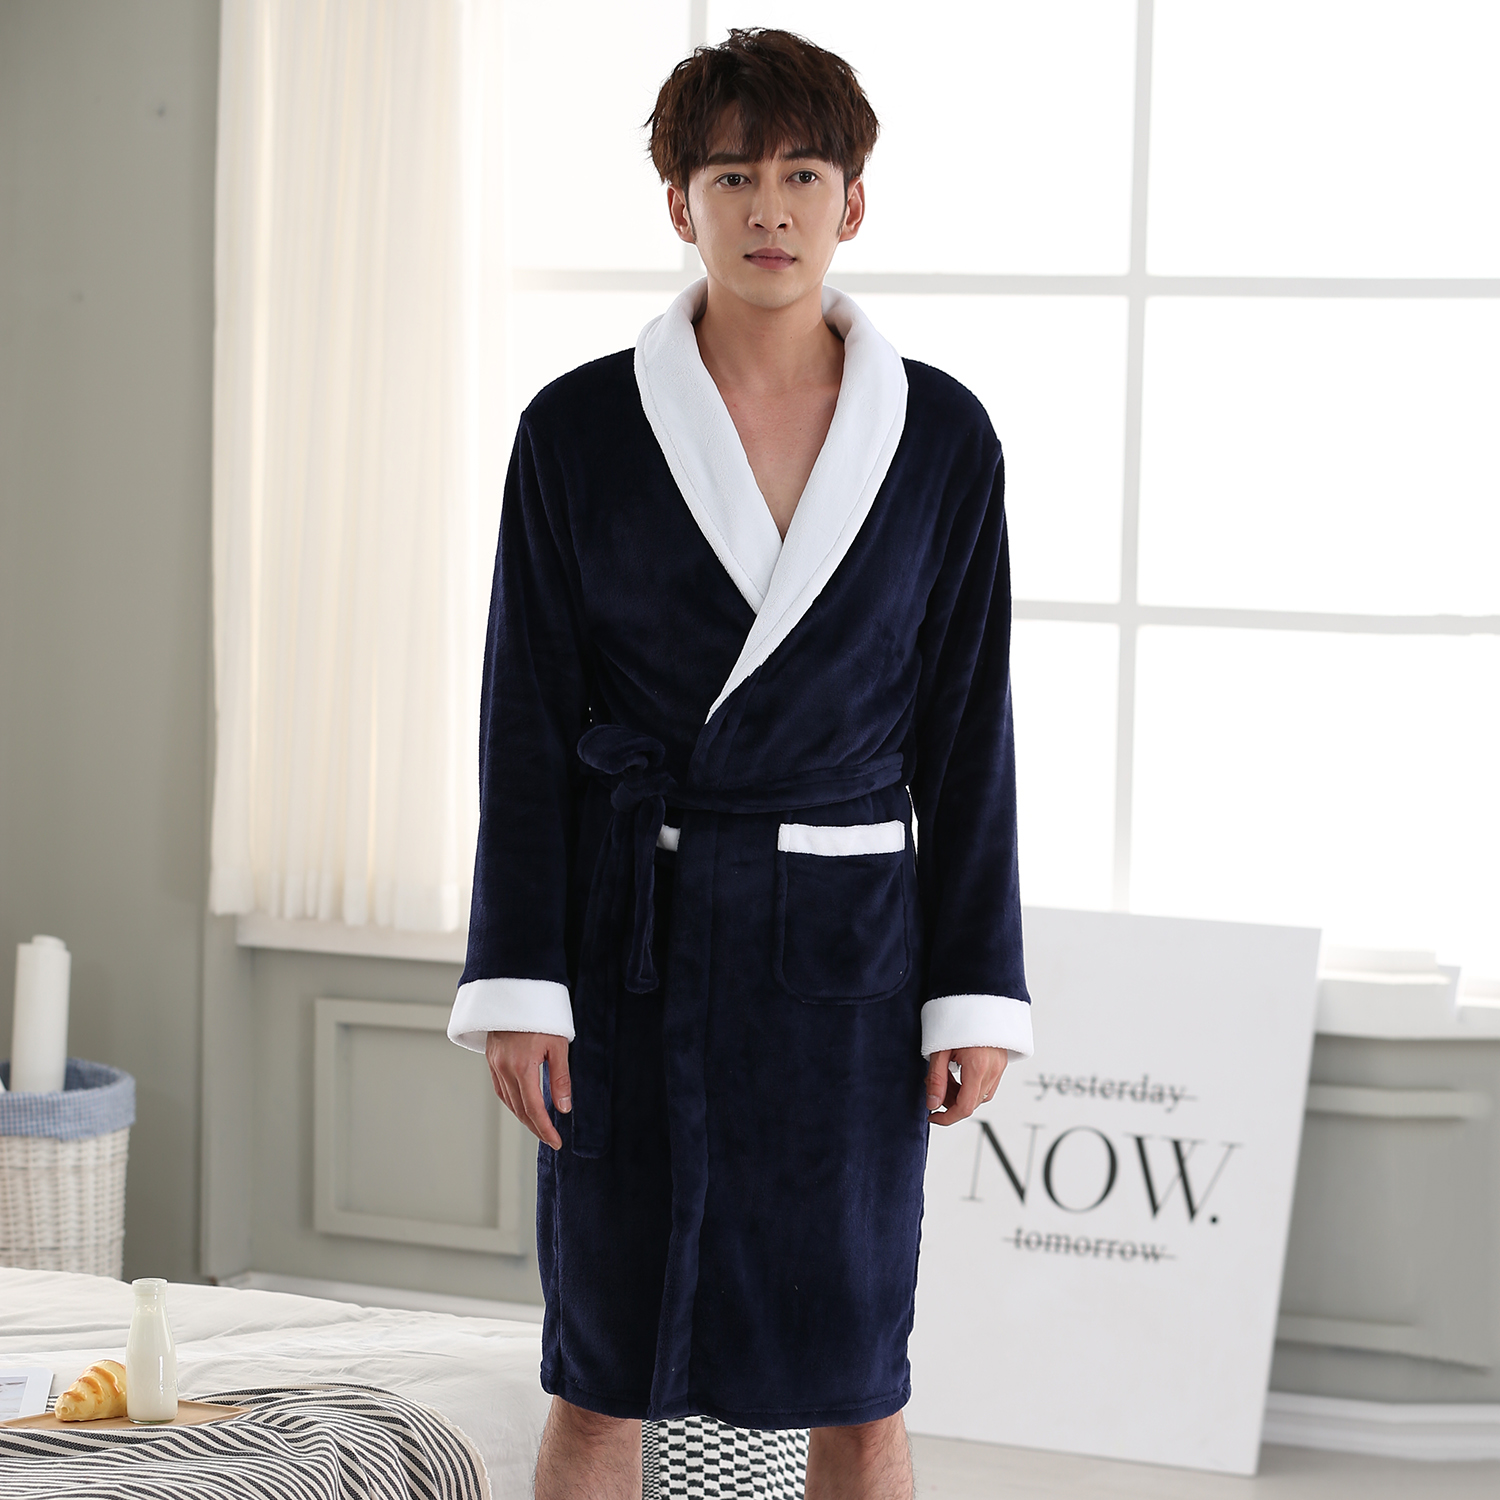 Men's Long Sleeve Robes Nightwear Novelty Style Solid Colour Nightgown Loose Bathrobe Robe Coral Fleece Casual Sleepwear